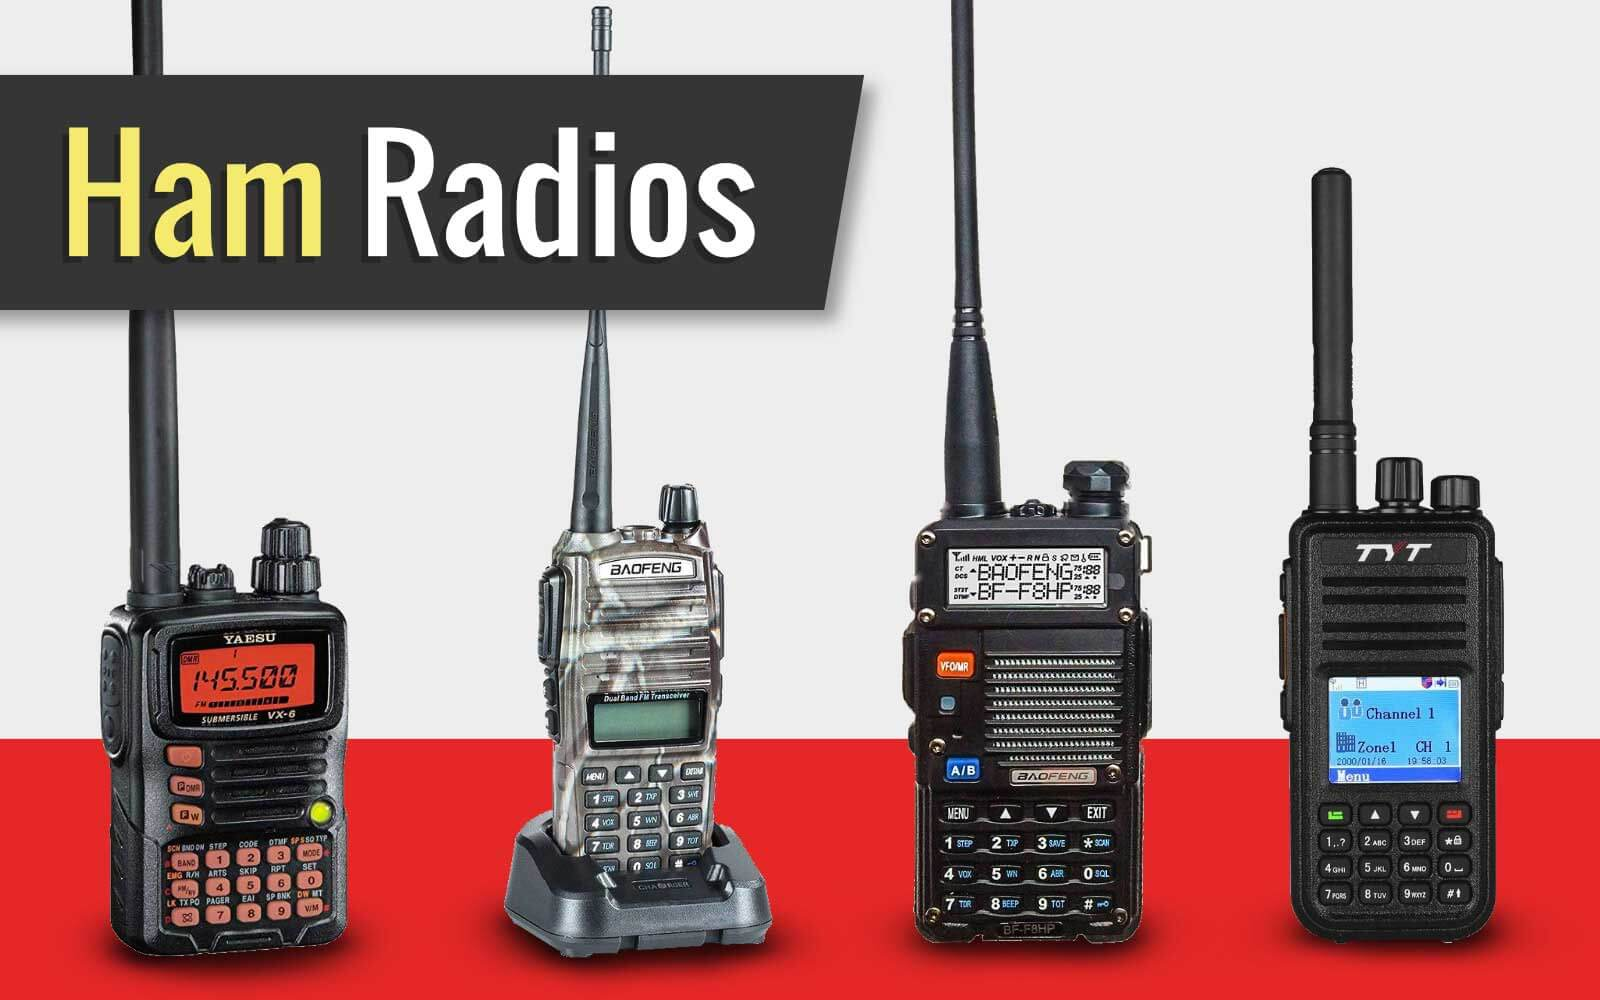 The Best Ham Radios on the Market